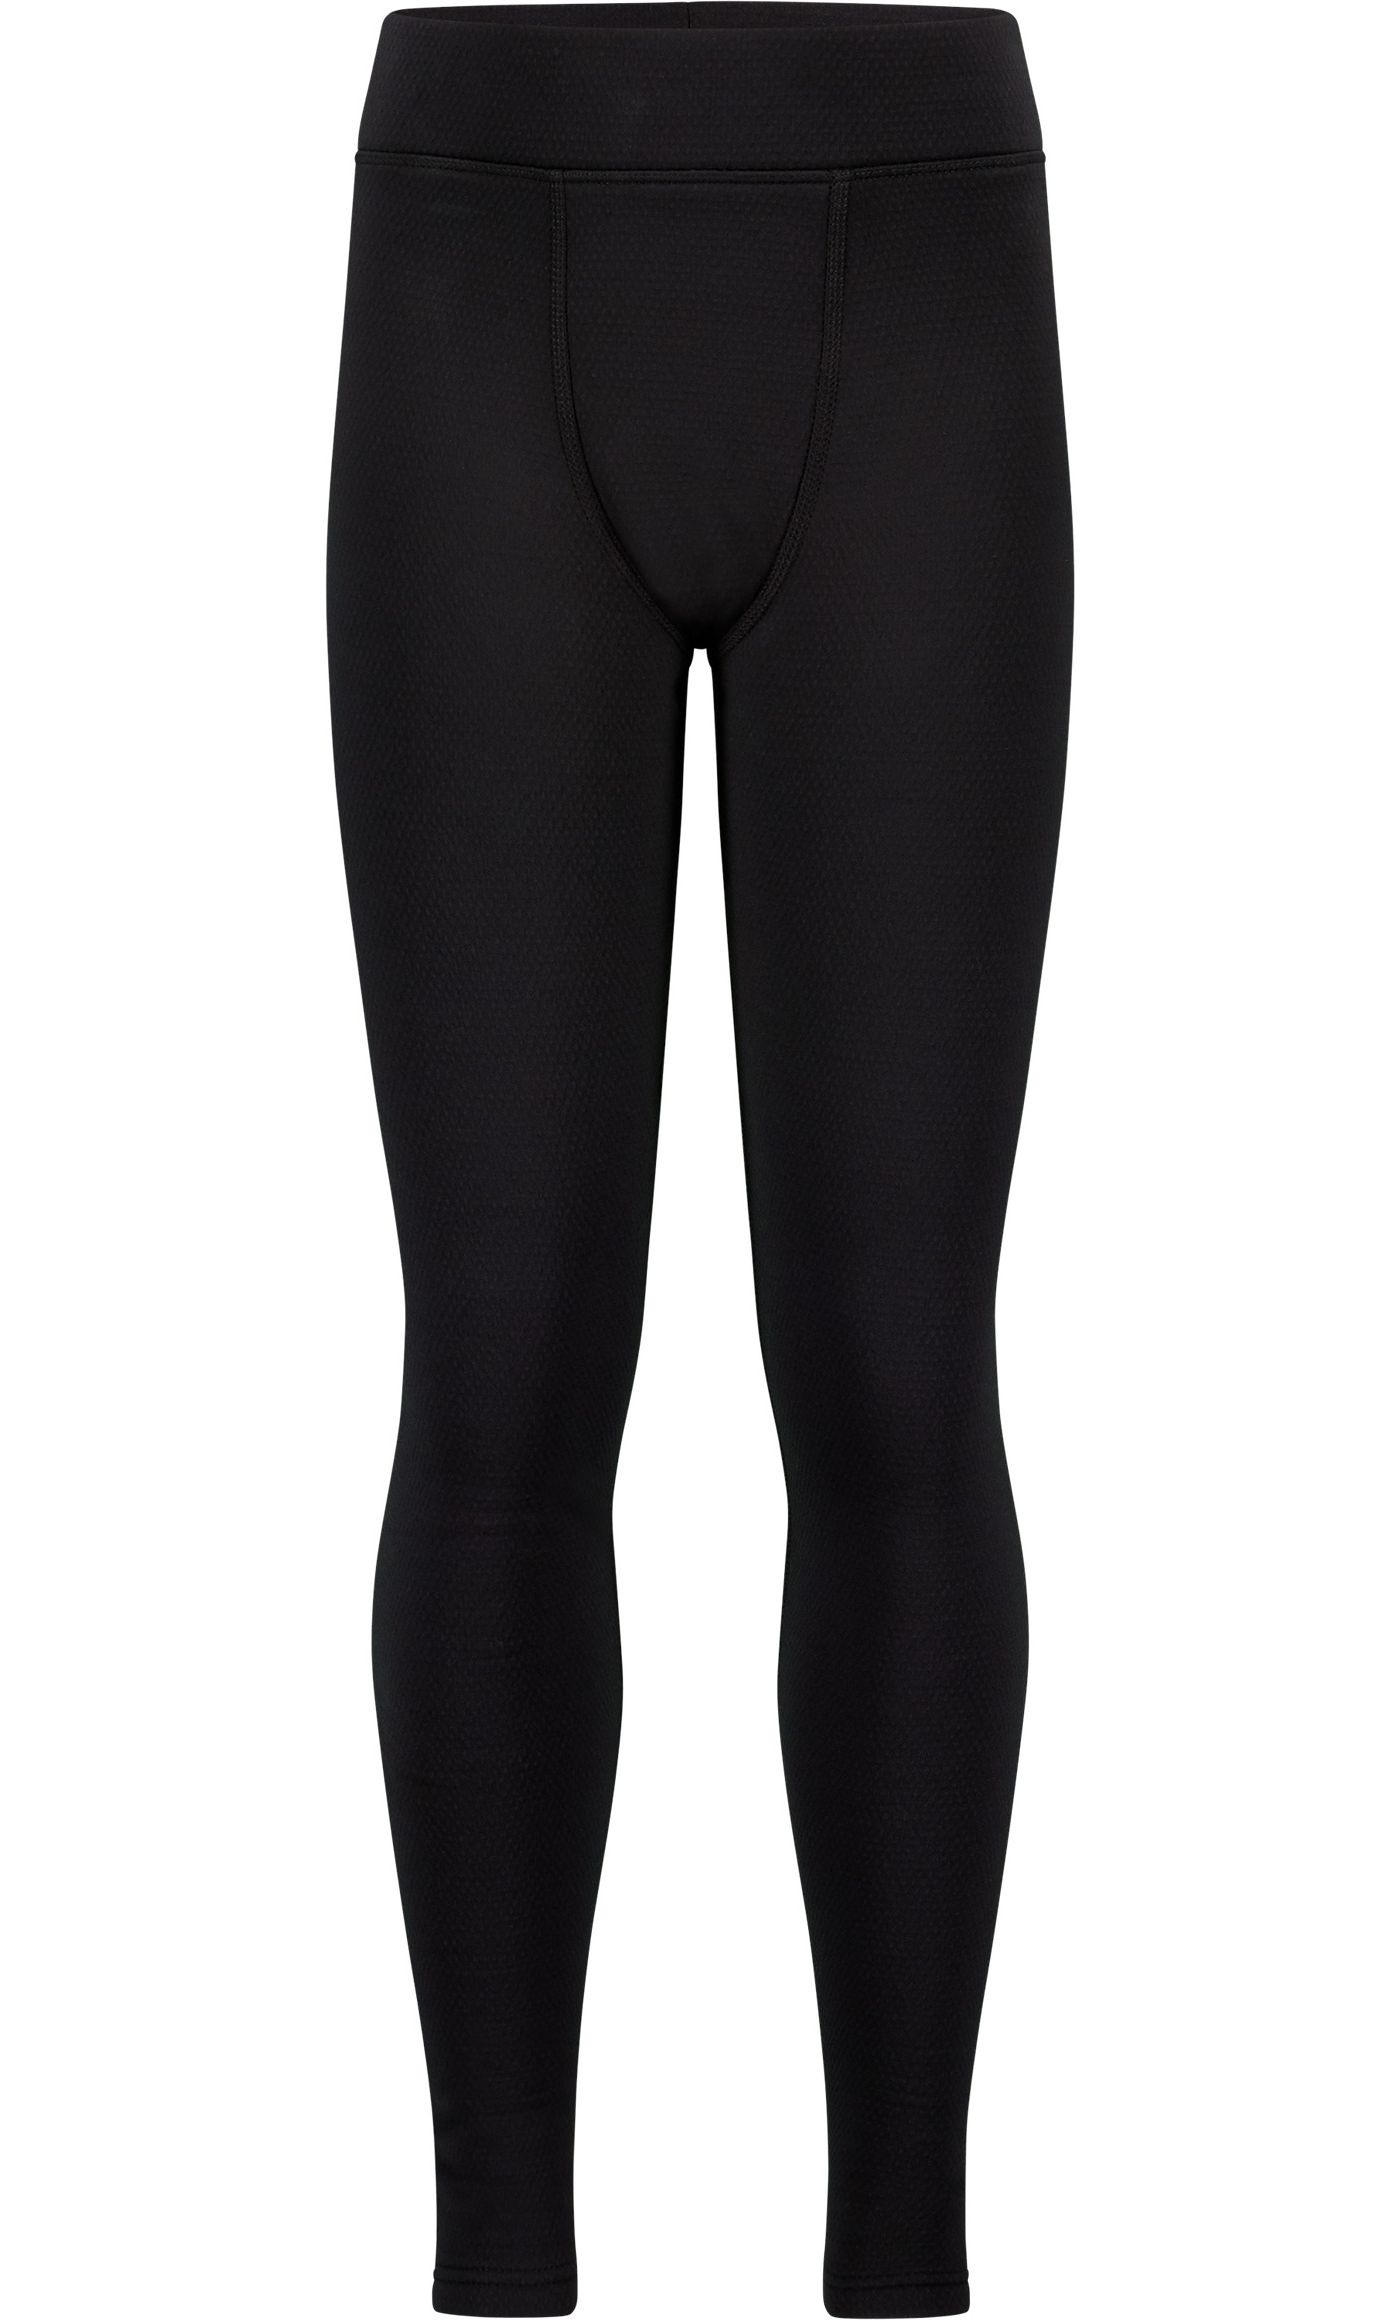 Under Armour Youth 2.0 Baselayer Leggings